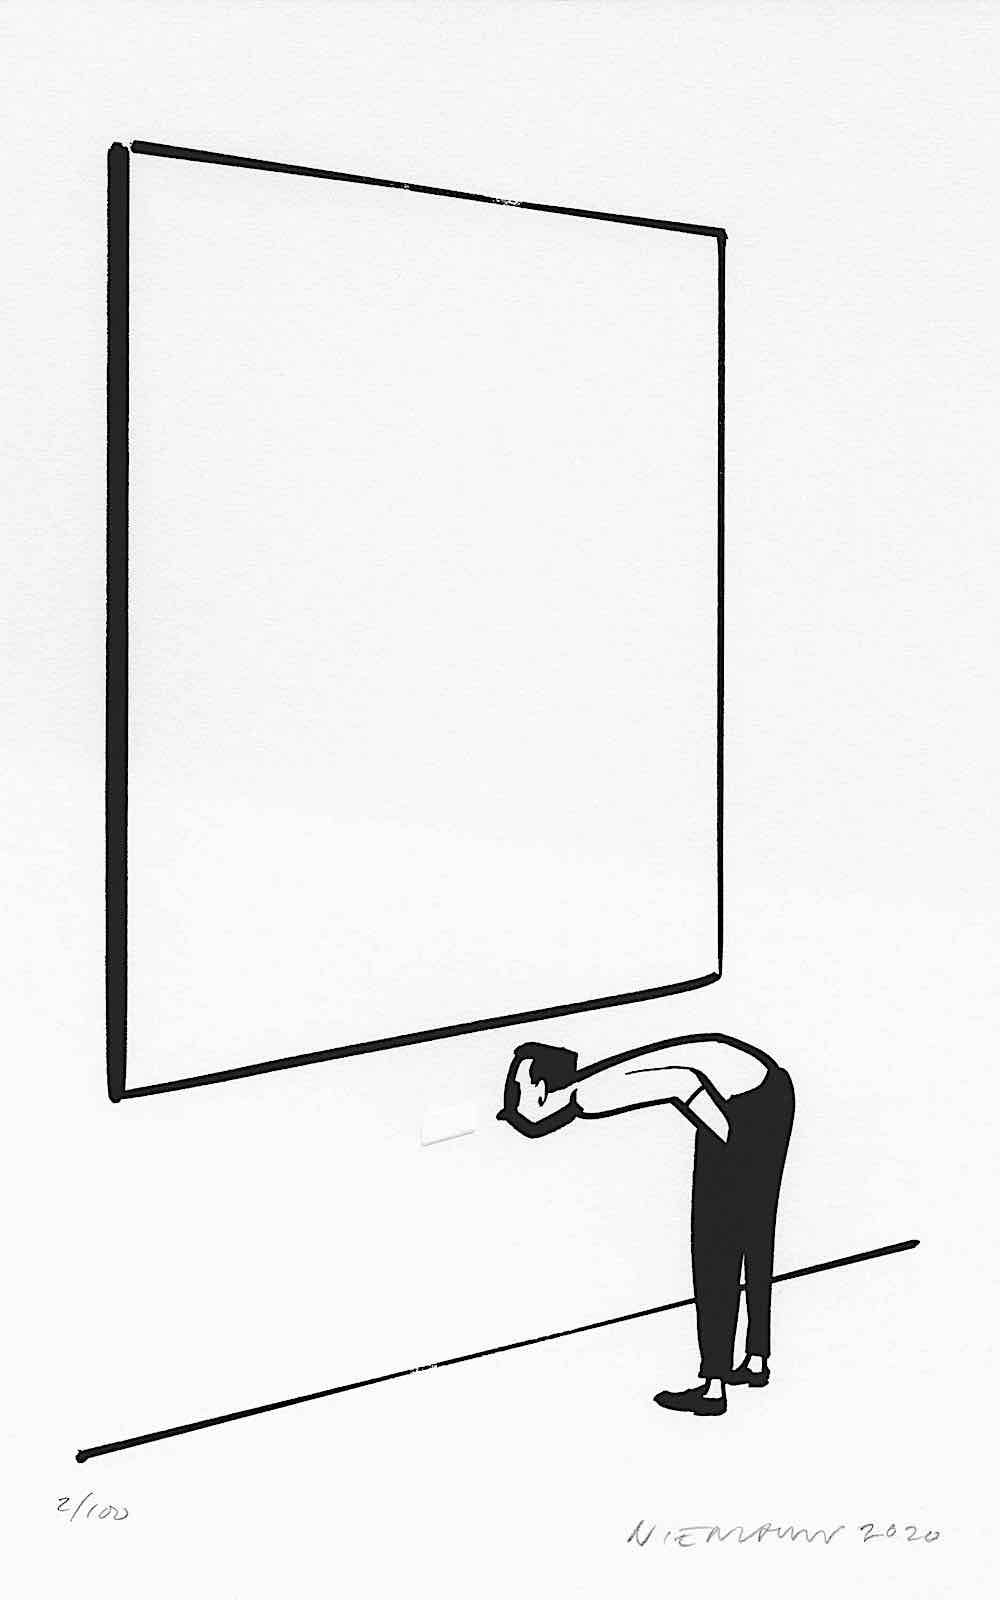 Christoph Niemann art, a man reading tiny words under large art in a gallery